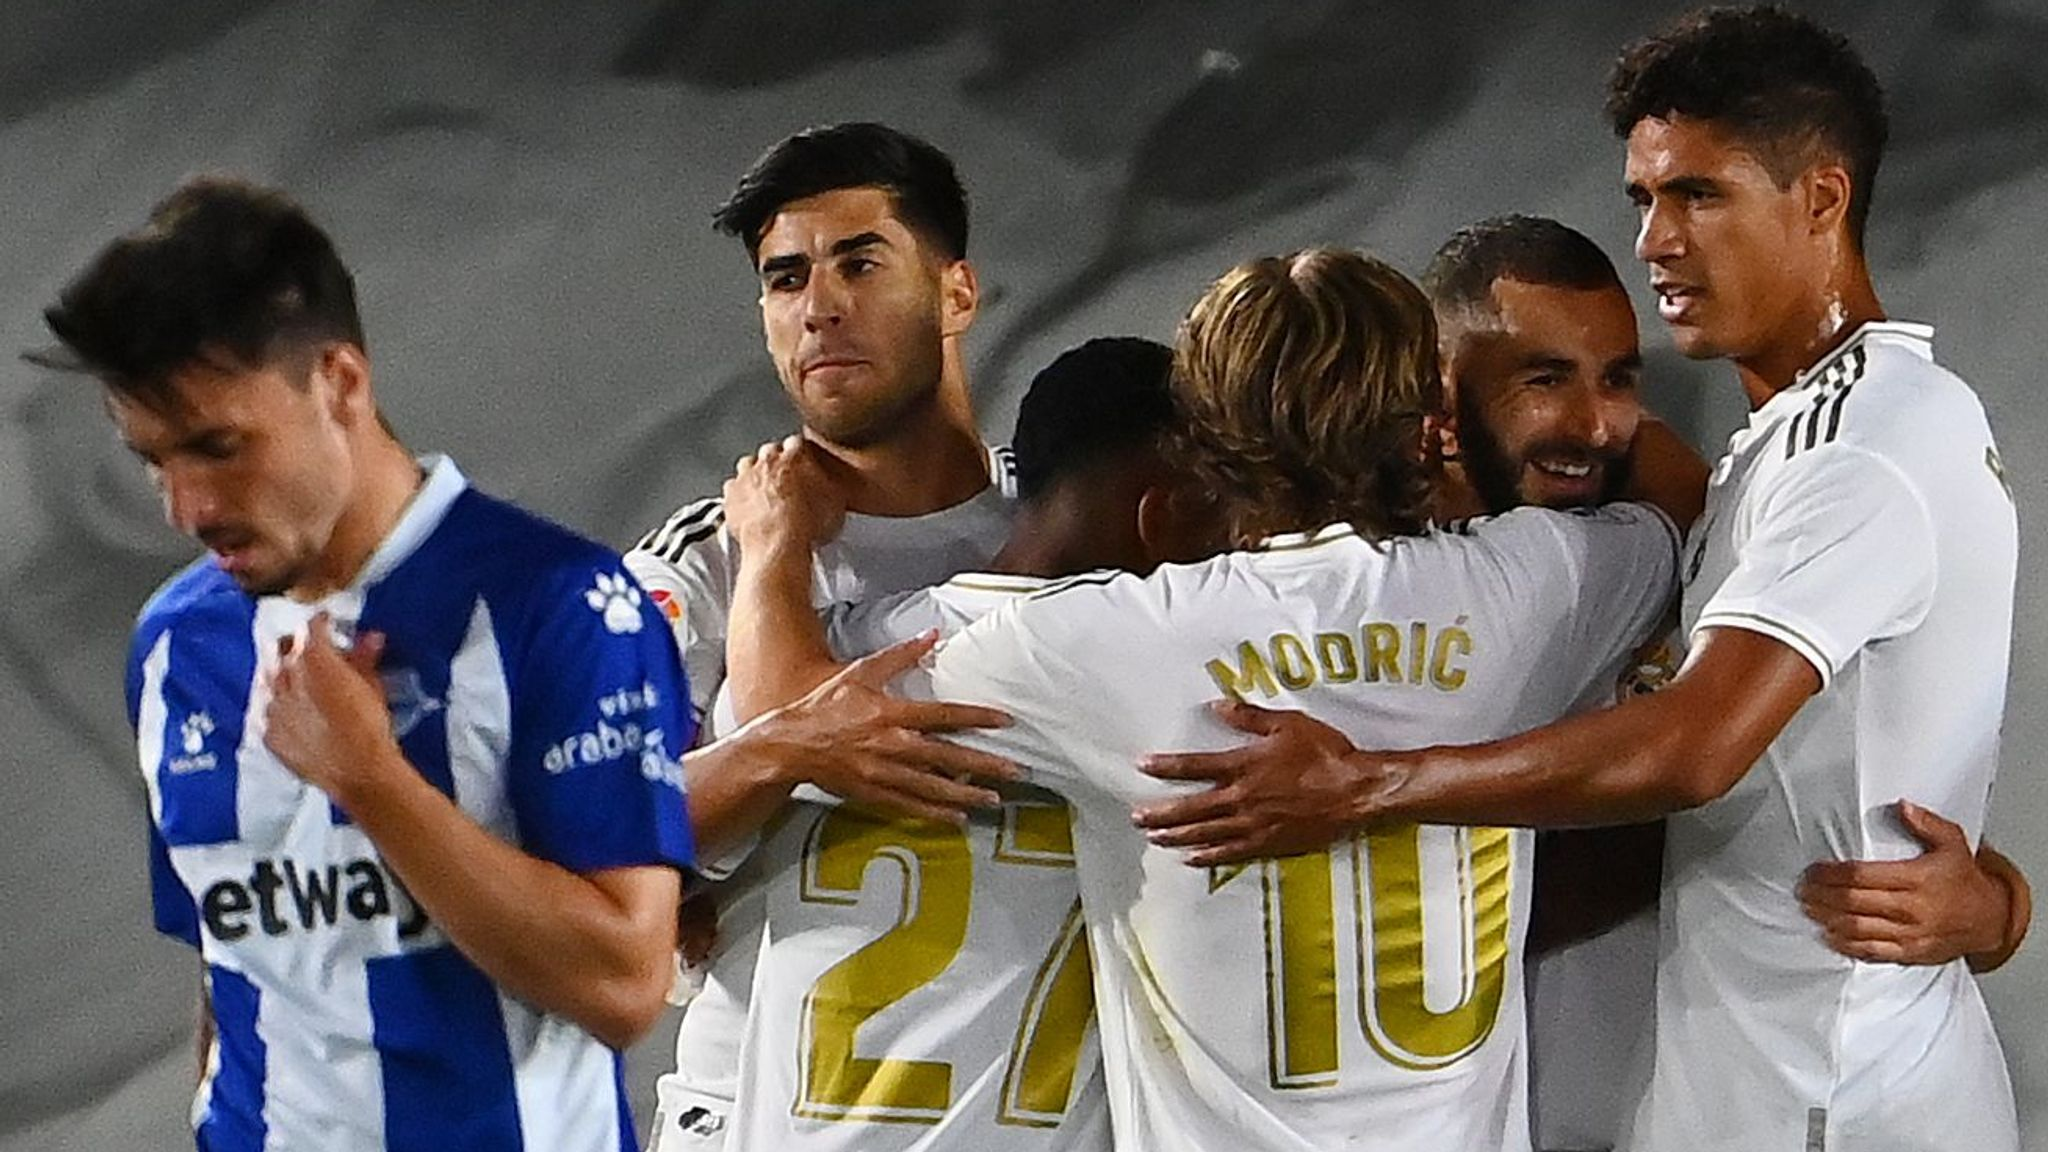 Real Madrid 2-0 Alaves: Real move within two wins of title with comfortable win